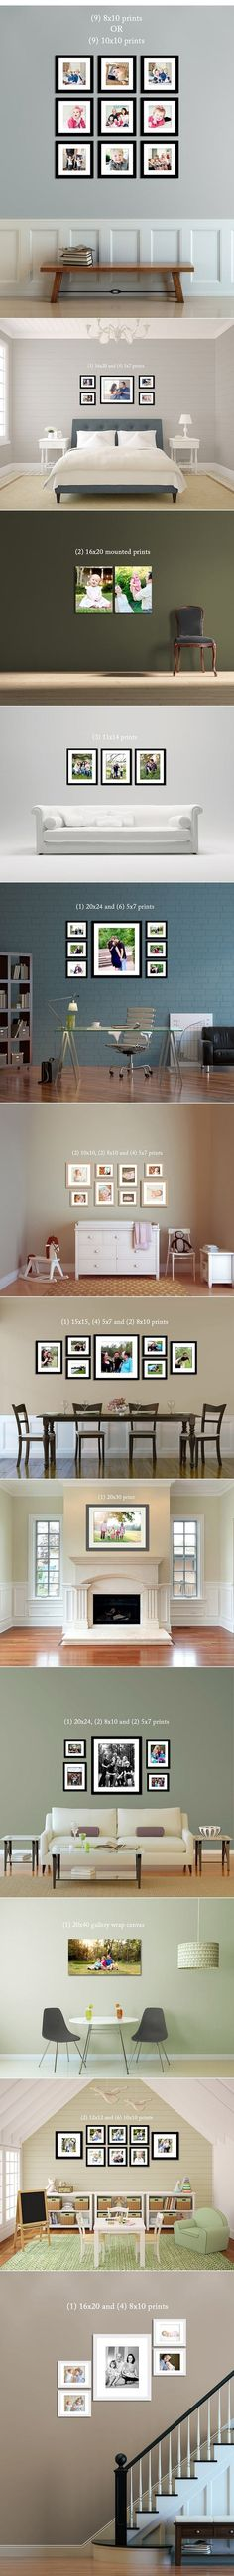 Great layouts to choose from! This requires planning to make sure your pictures are oriented just right to fit into the wall pattern. That is why an advanced planning session is necessary to make sure the colors, style, sizes, and orientation all work for your display place. Welker Photography includes a planning session in all of our regular photo sessions. http://www.welkerphotography.com Boise Idaho's favorite Family and High School Senior Pictures Photographers!